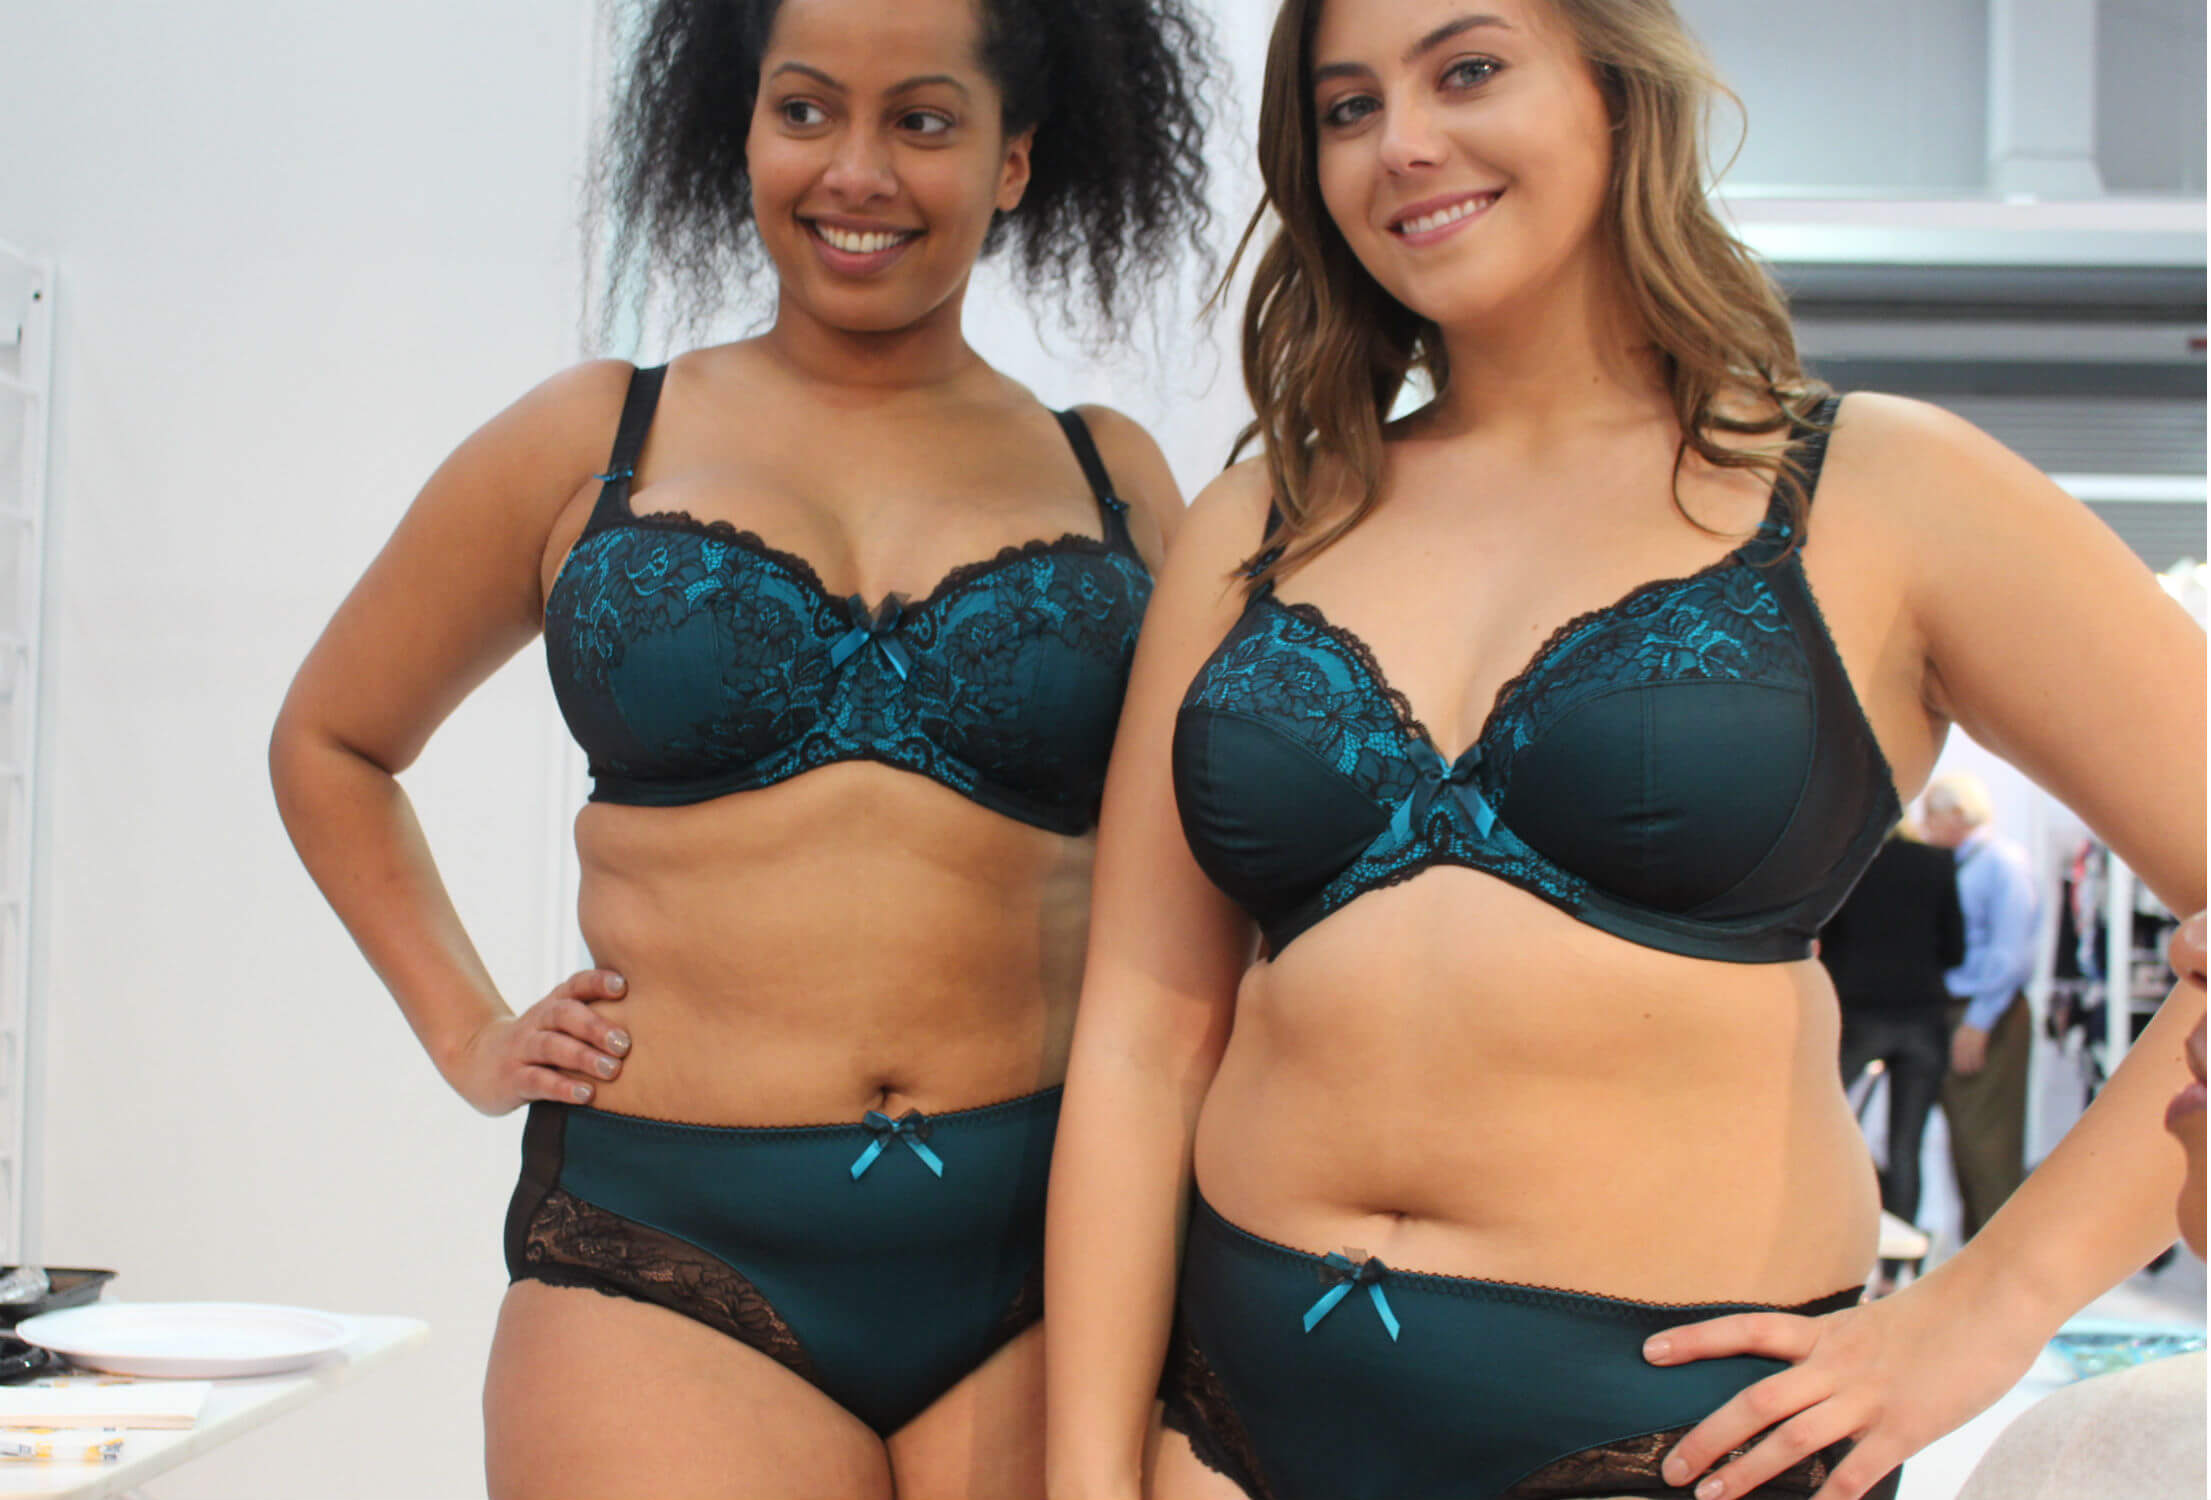 eb5696a62 Lingerie Market Fall Winter 2017  14 Size-Inclusive and Plus Size Lingerie  Brands to Know